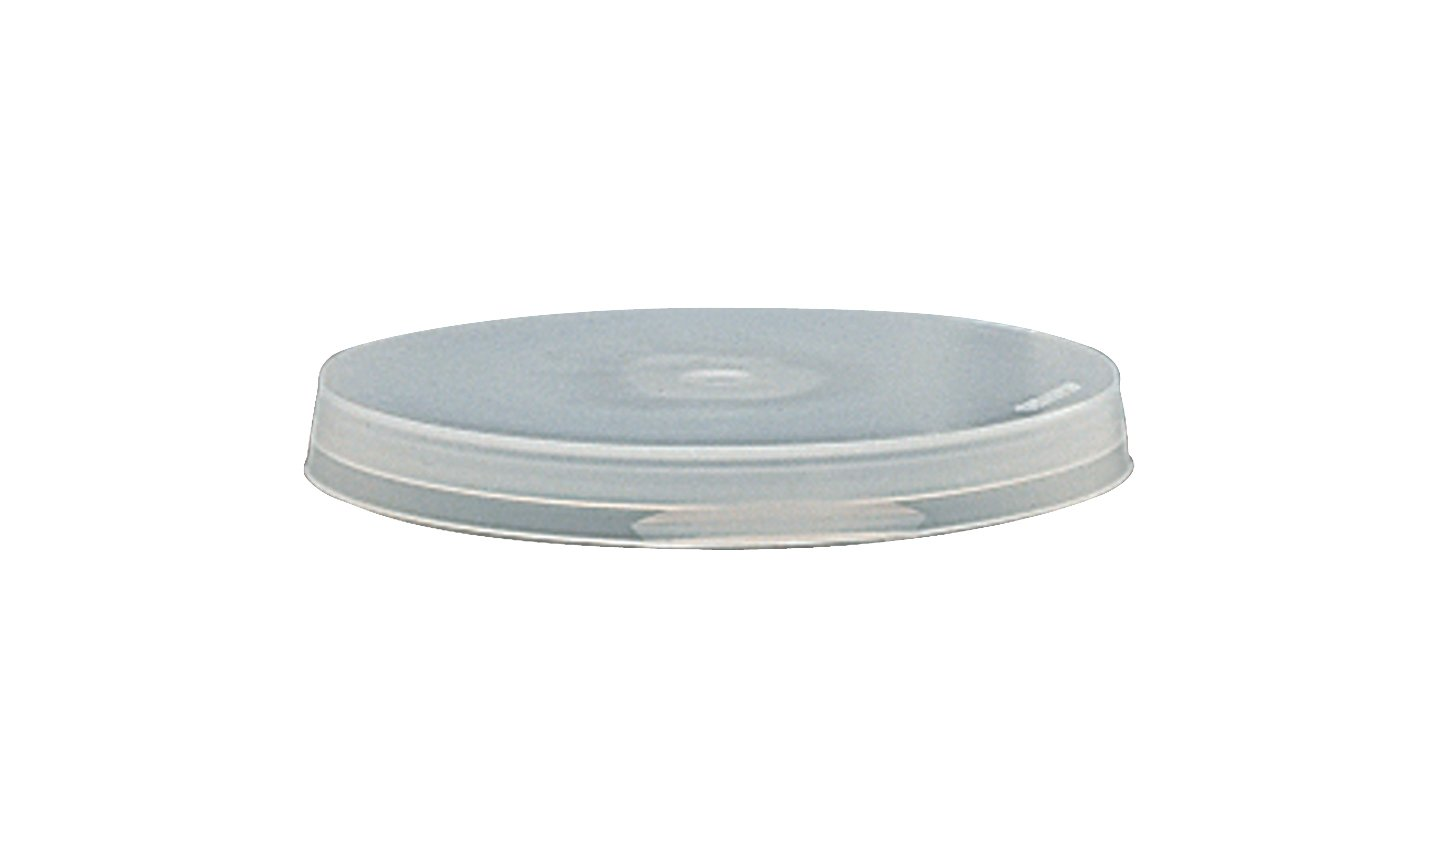 BD 354017 Falcon Polypropylene Lid for 4.5 oz or 8 oz Sterile Sample Containers (Case of 500)